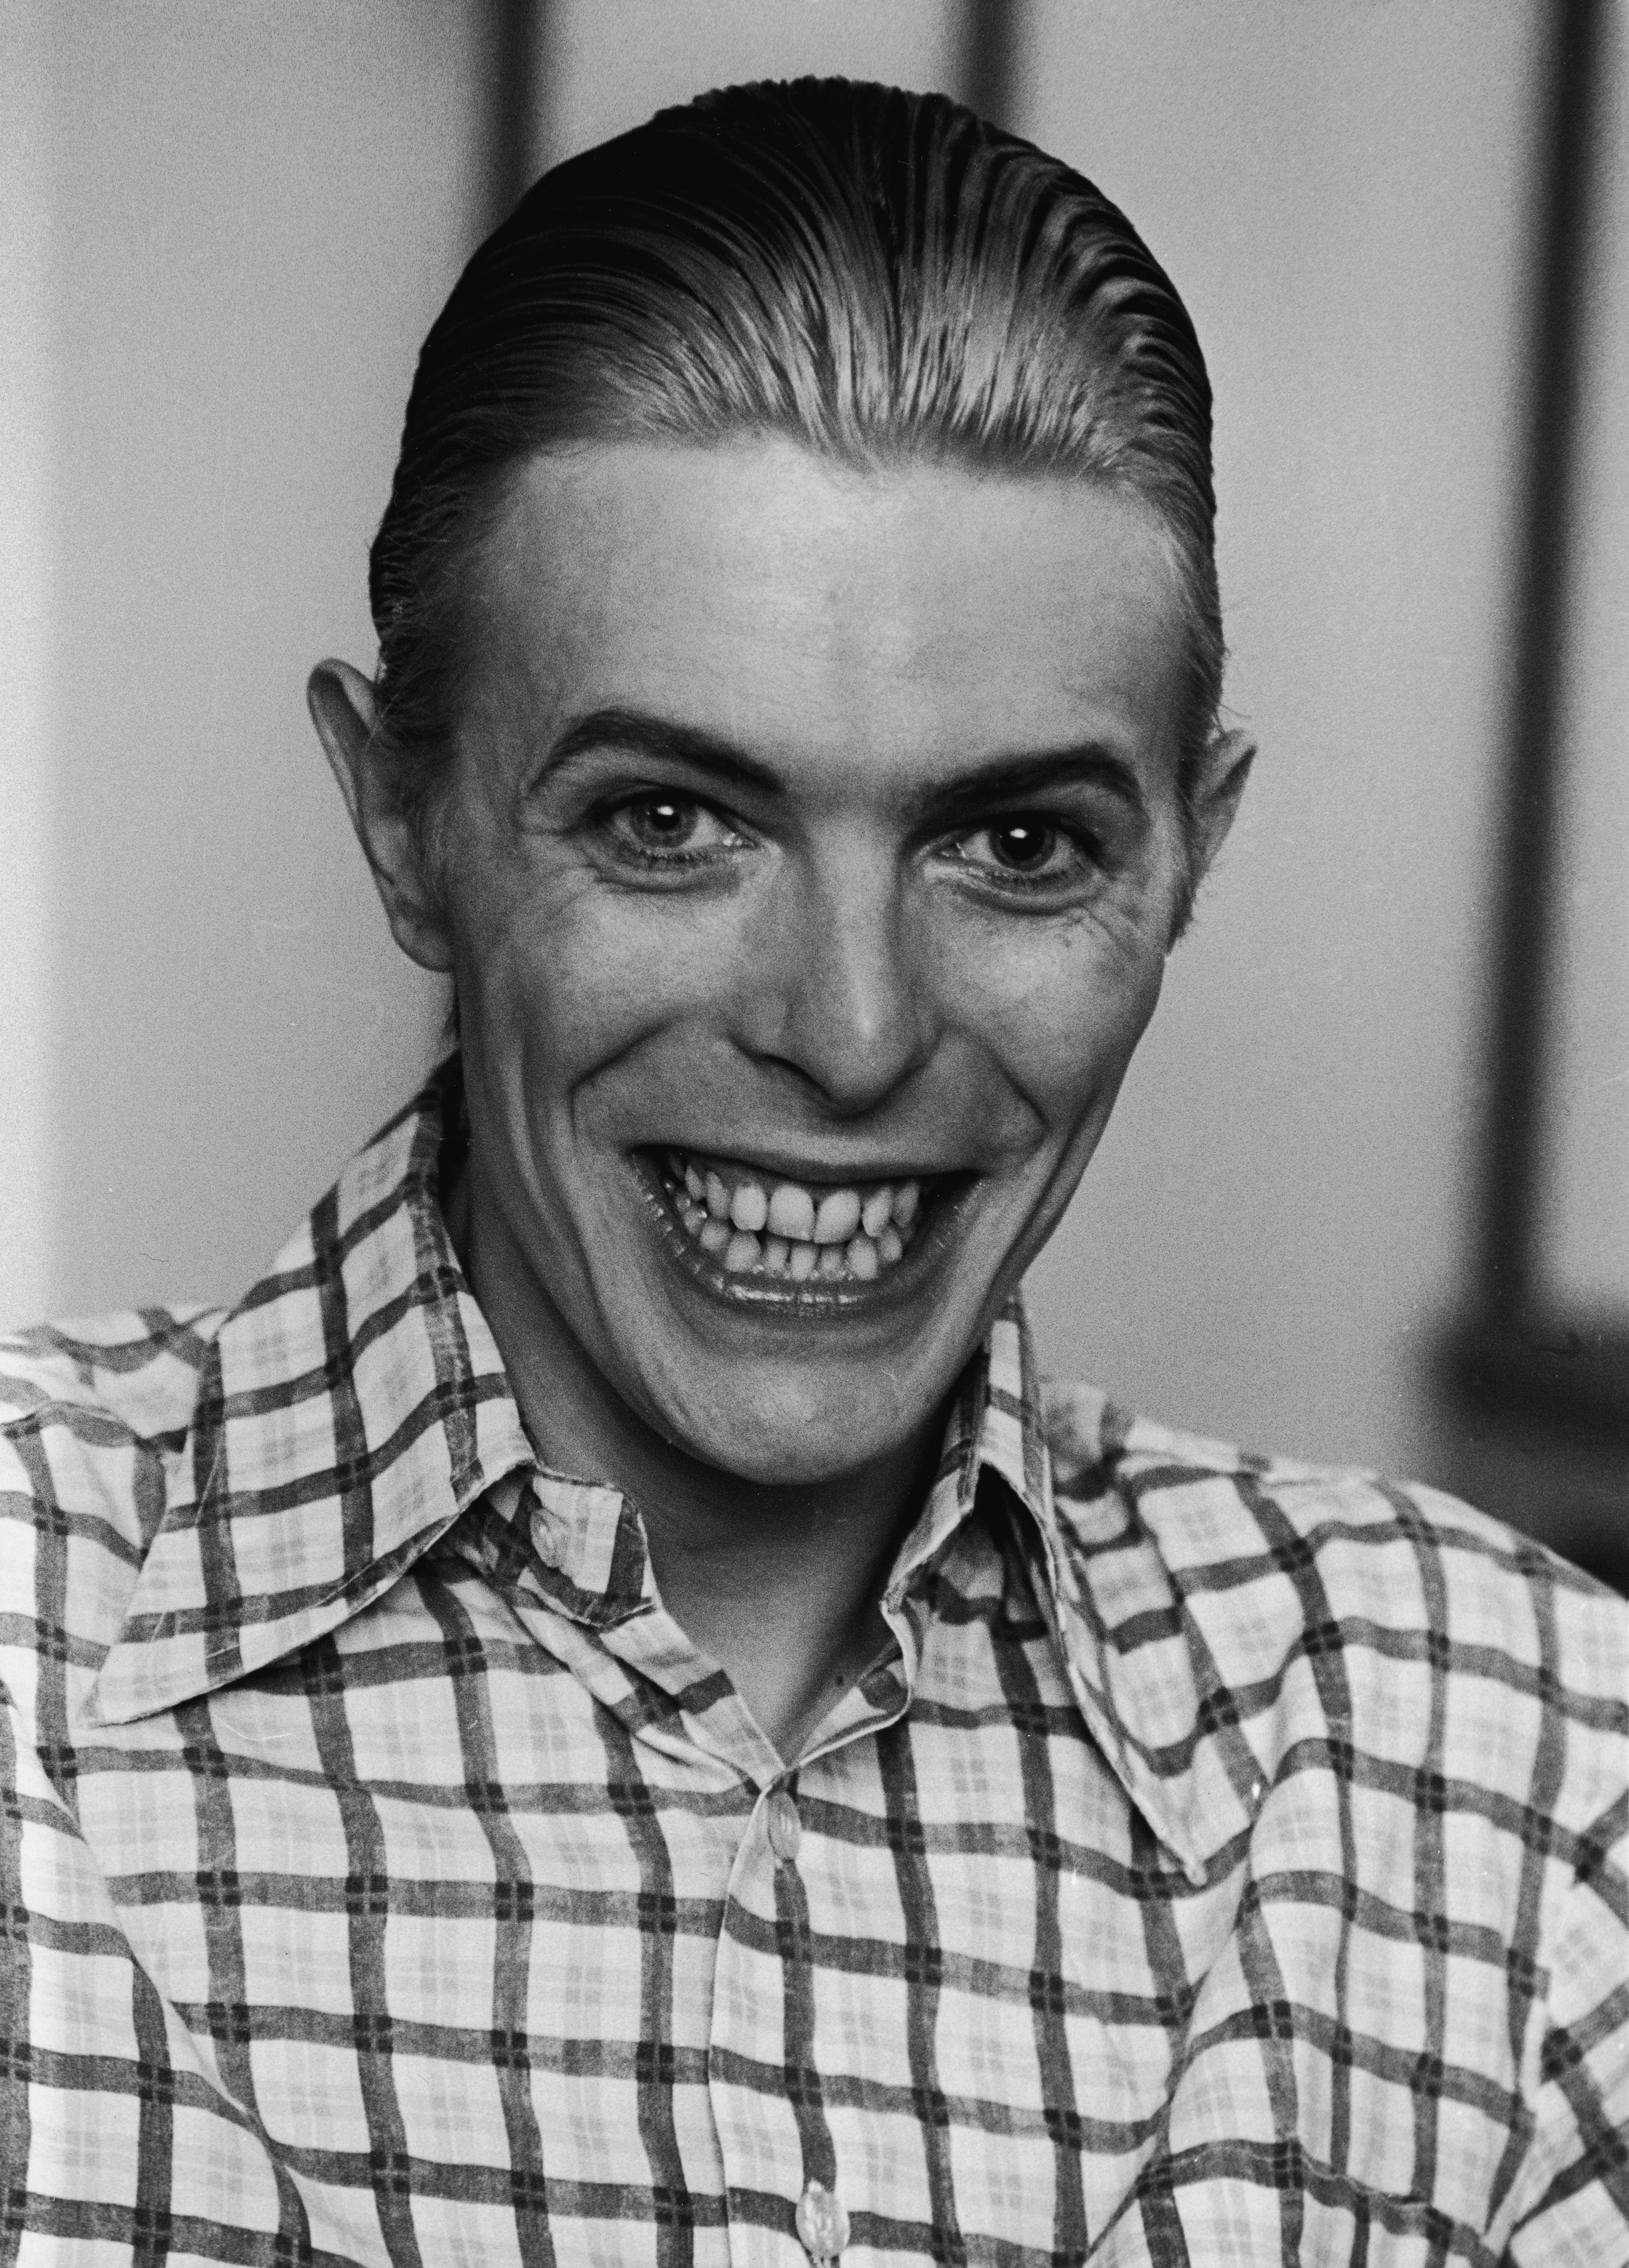 1545067011232_GettyImages-2189128.jpg - David Bowie nel 1980. Un sorriso come quello del Joker